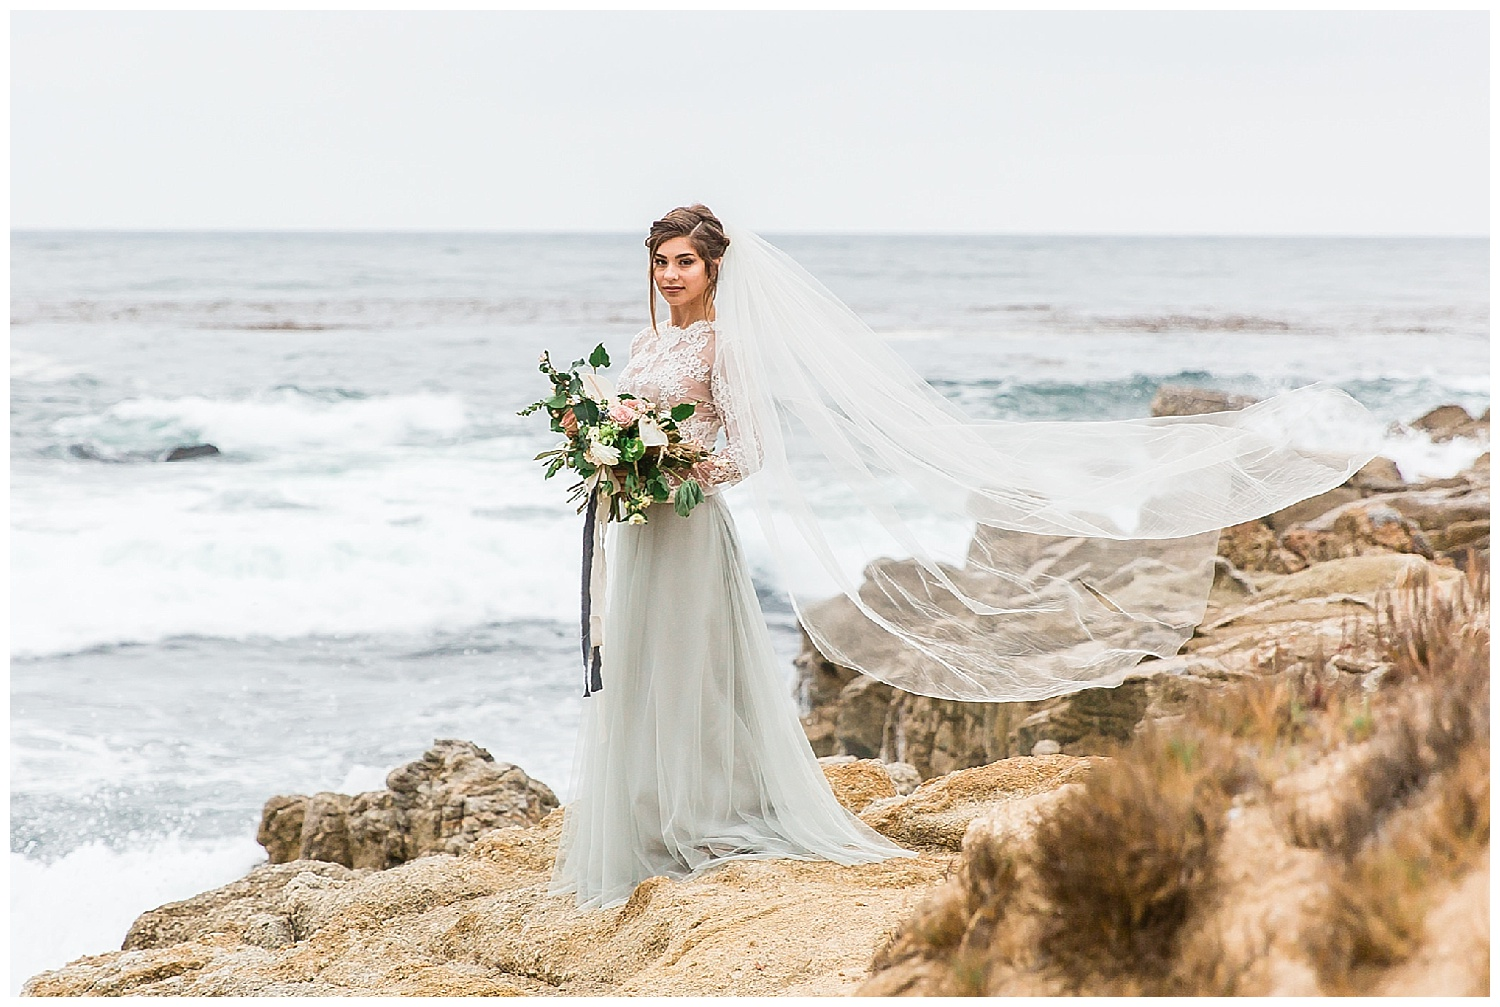 The bride in a sheer lace top with a French Blue English netting skirt. Custom made cathedral veil. All available through Epiphany Bridal Boutique in Carmel-by-the-Sea, California.